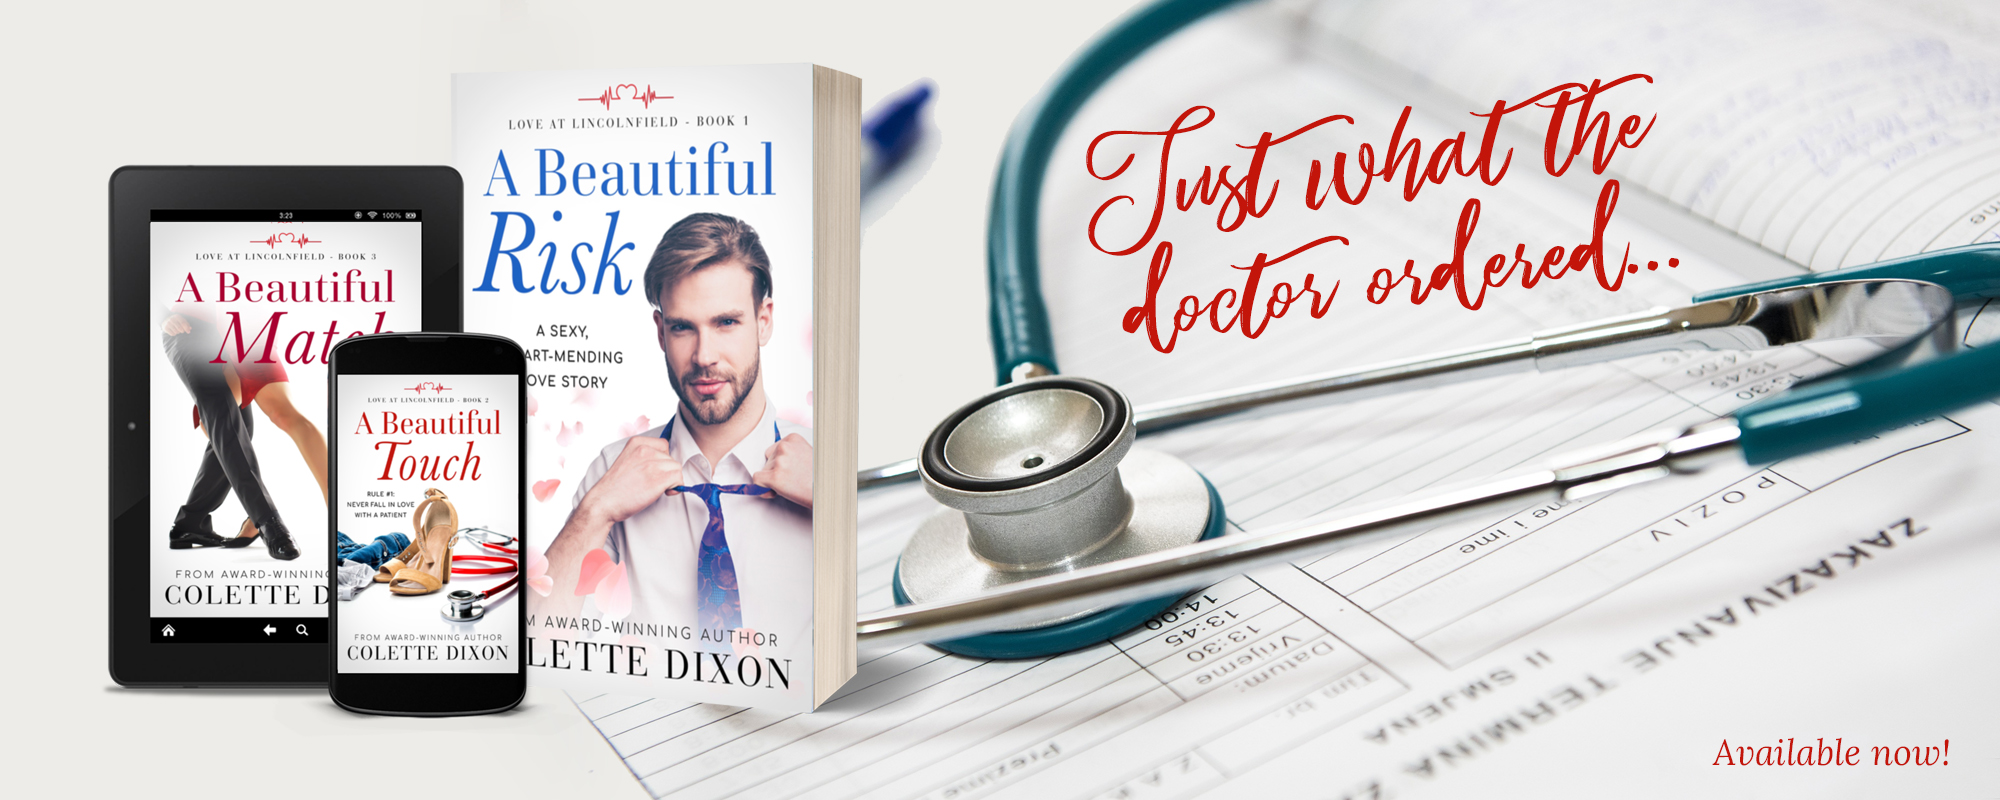 Love at Lincolnfield by Colette Dixon, available now